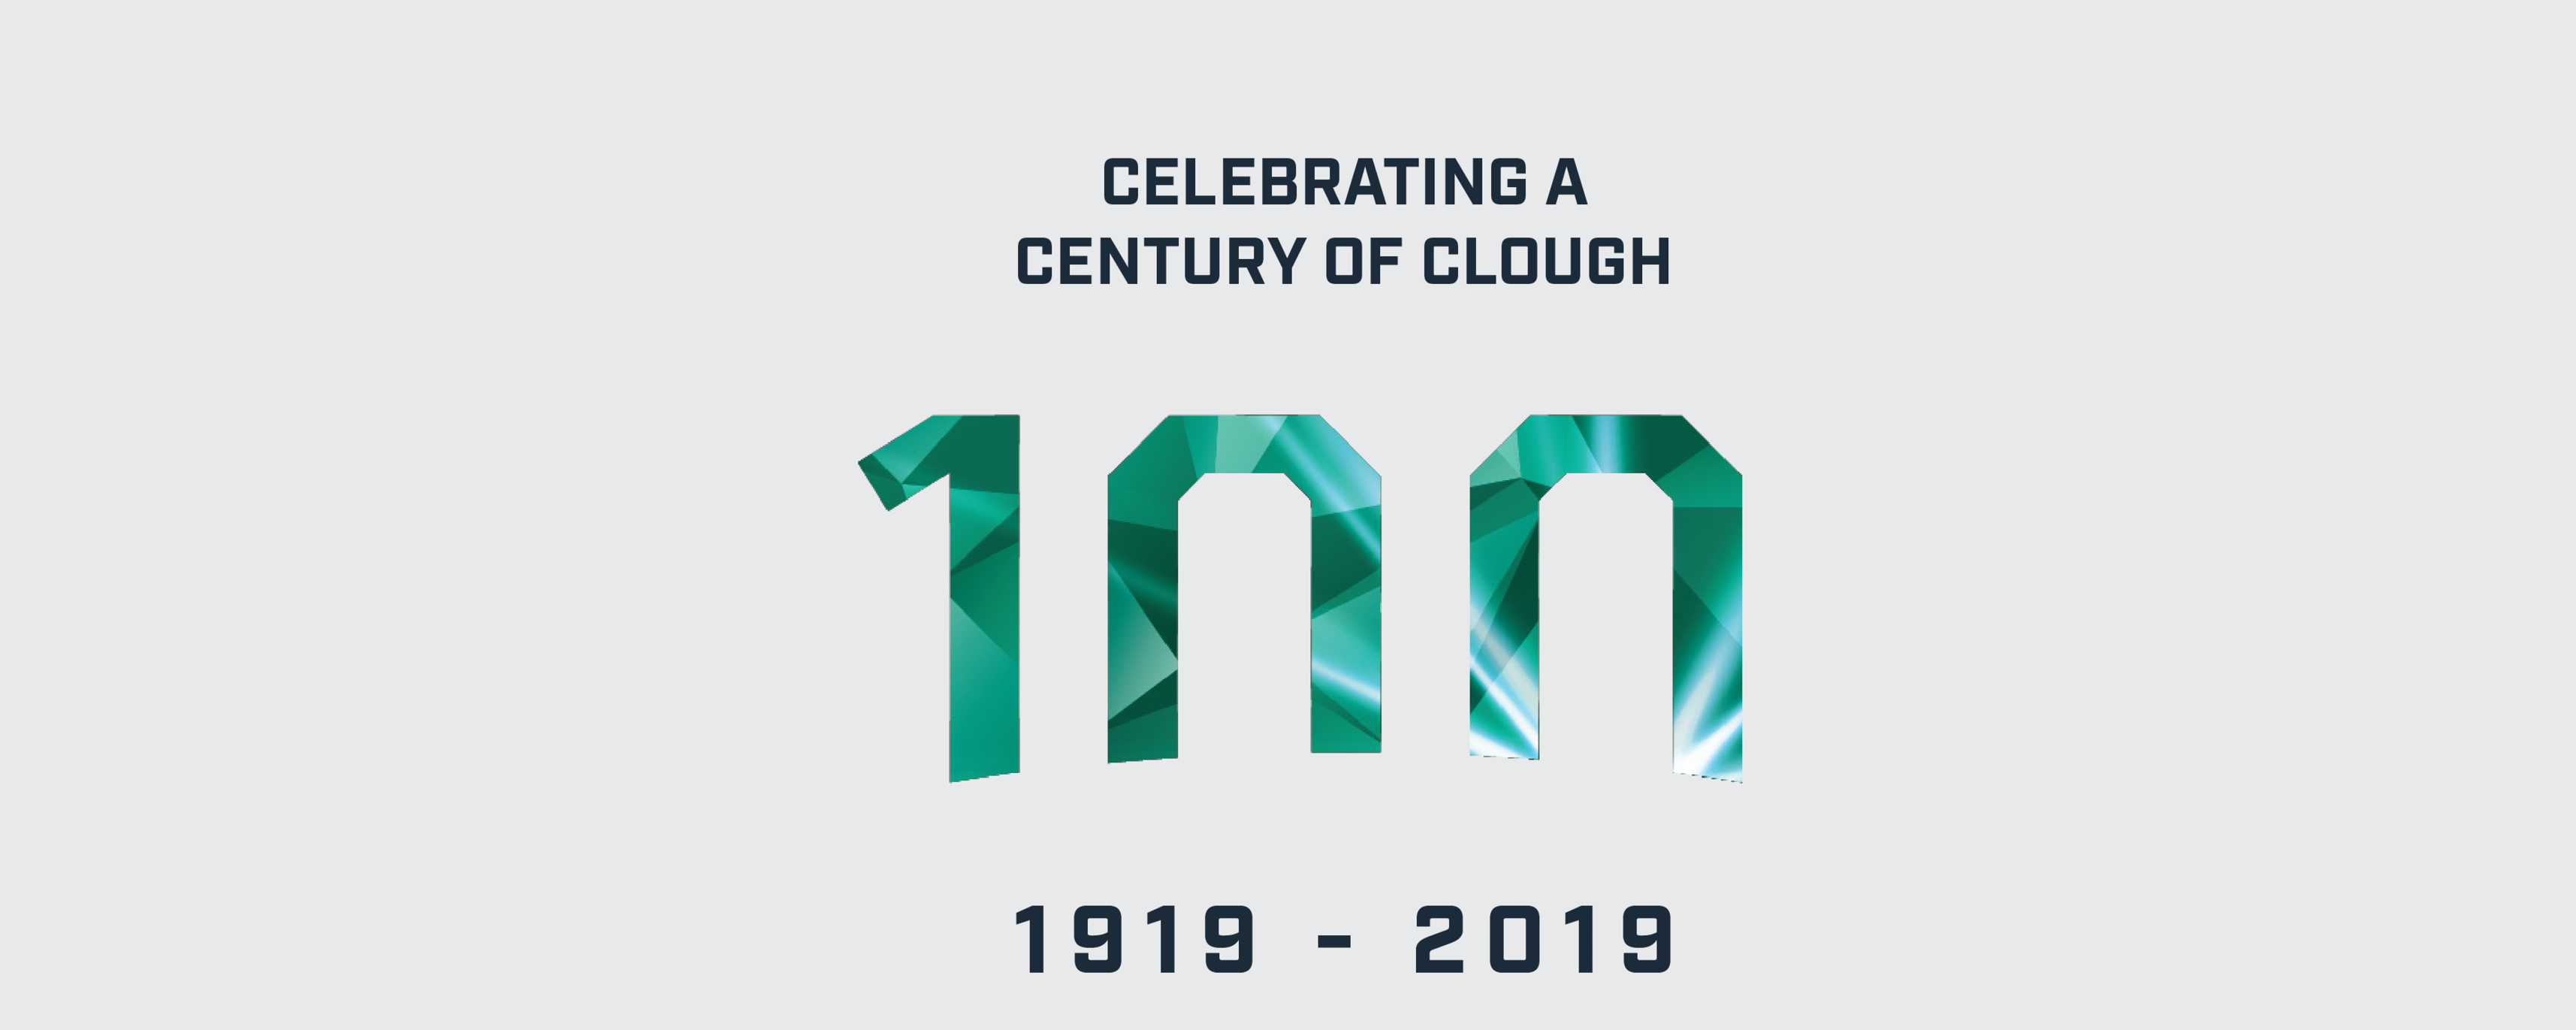 2019 marks 100 years of Clough. This year we are celebrating all of our historic achievements and looking forward to our future successes.